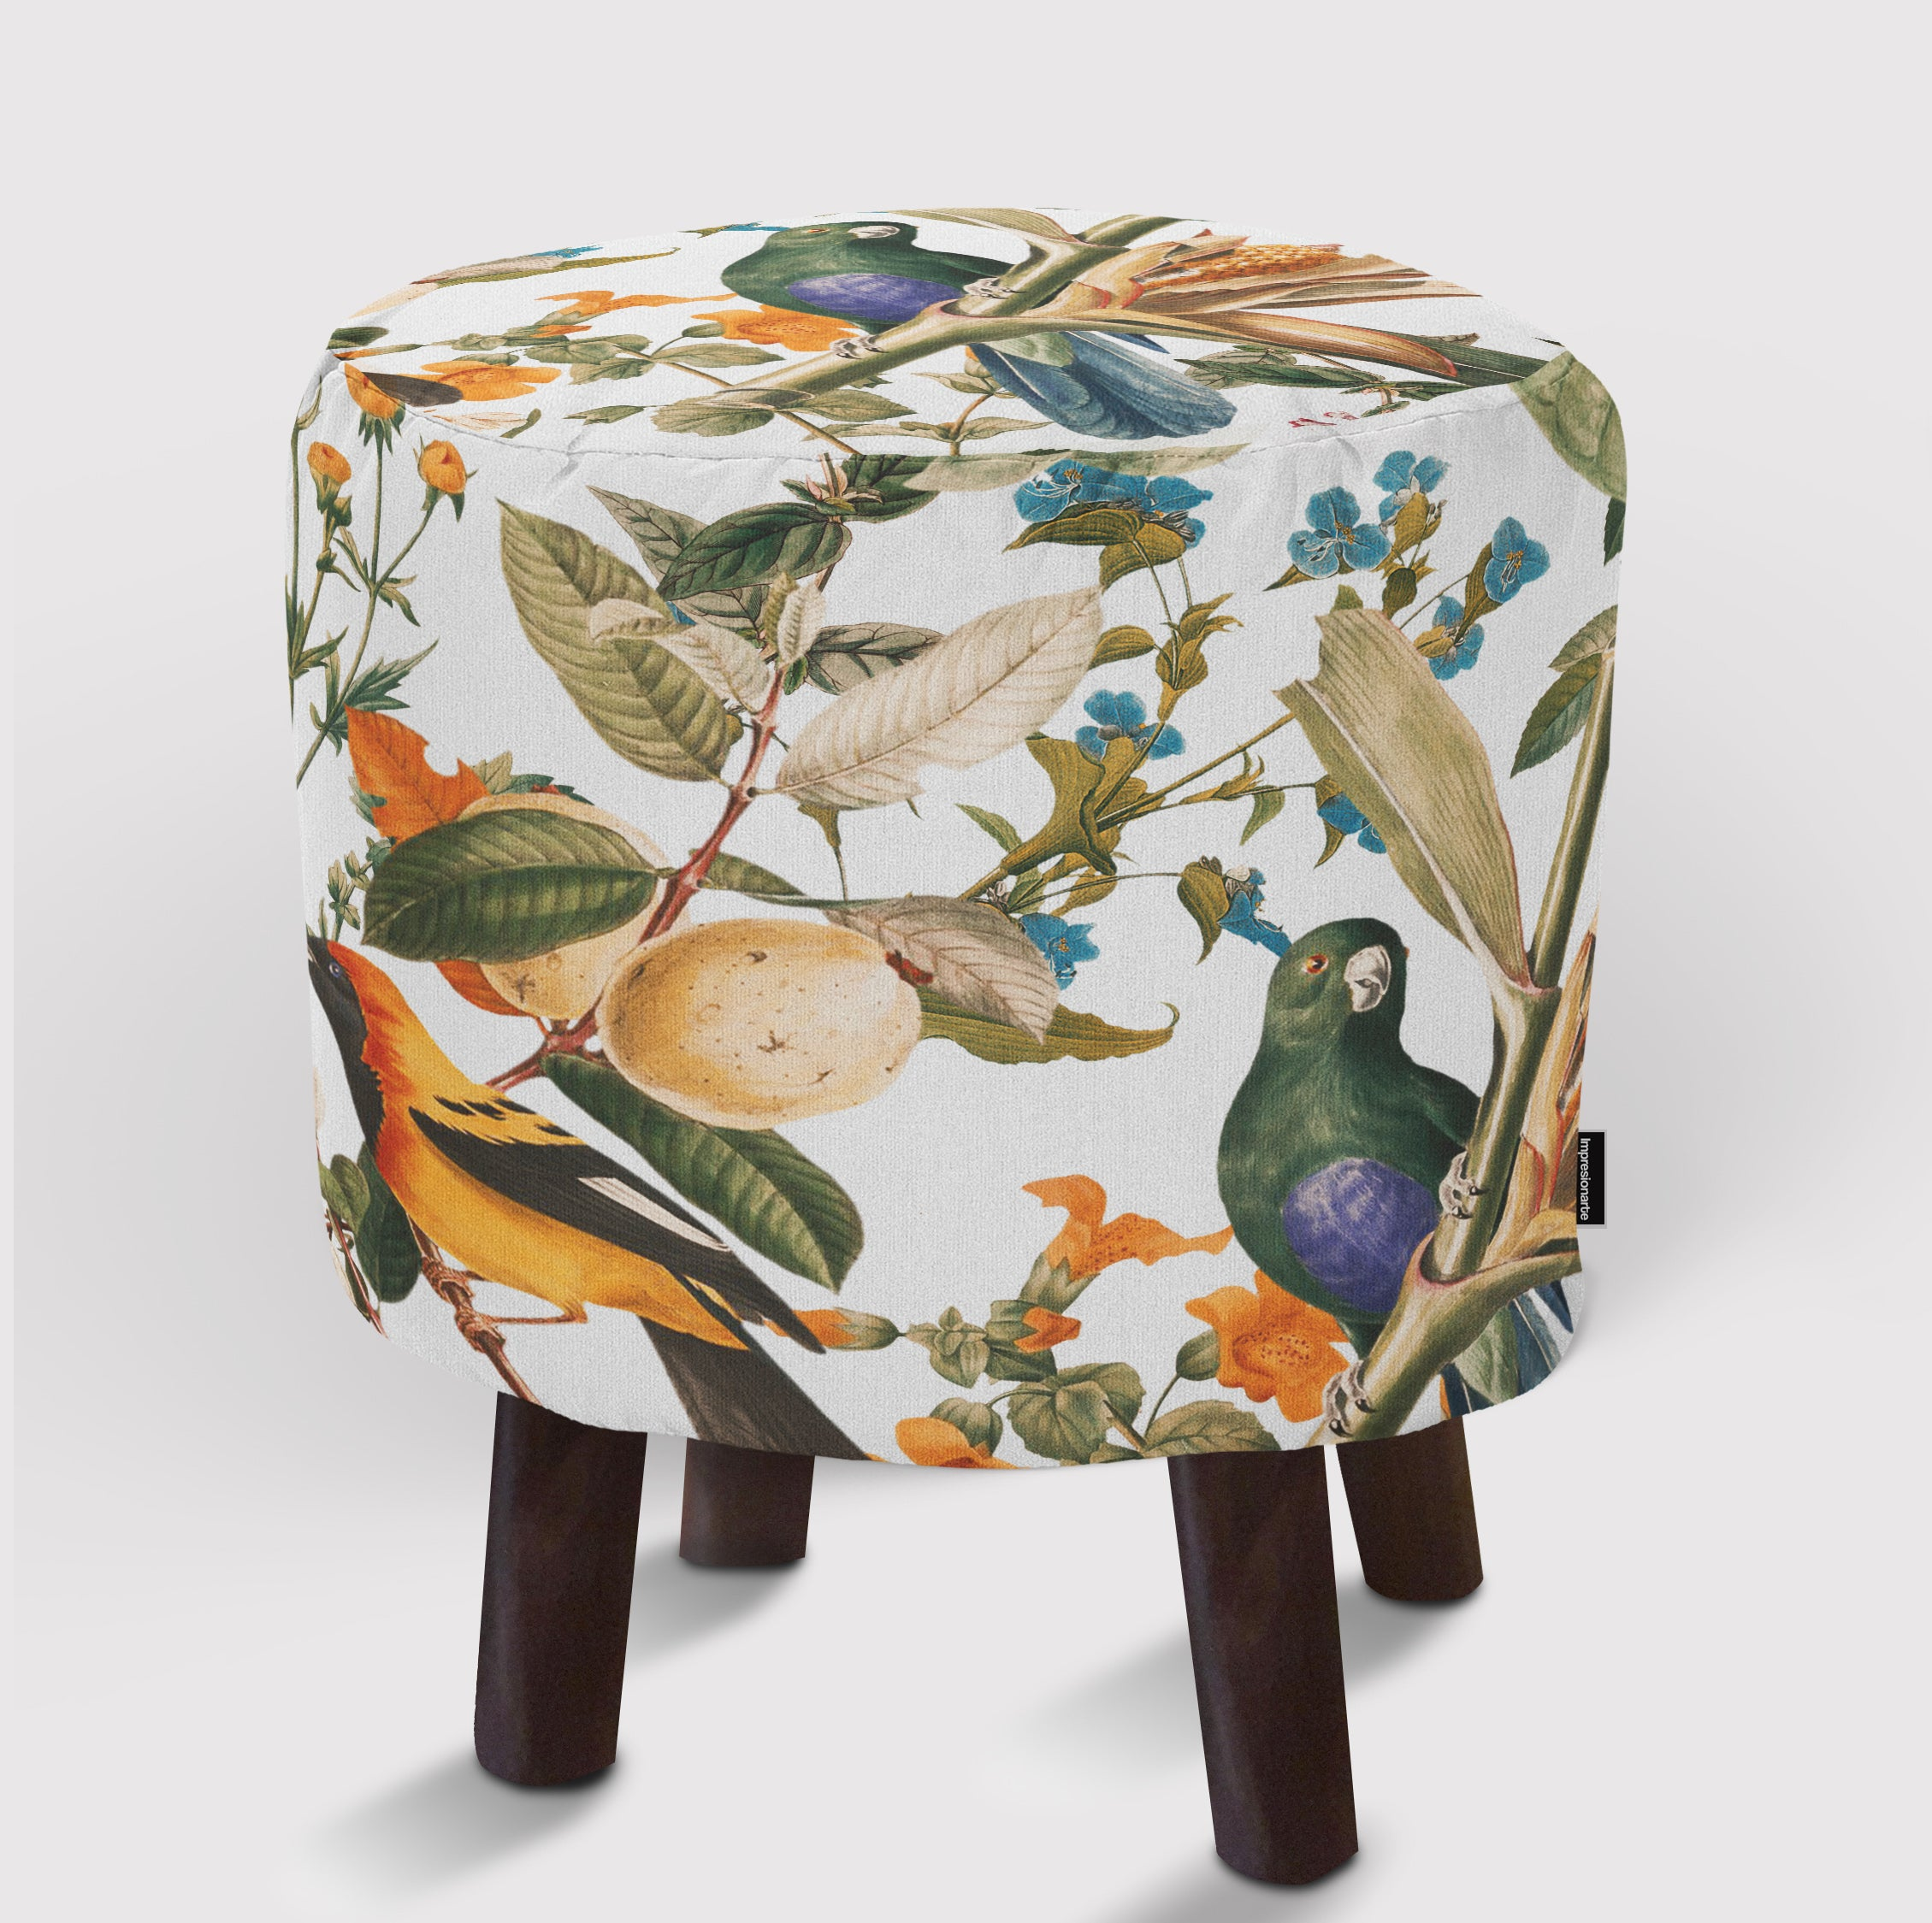 Pouf Floral and Birds XXXII